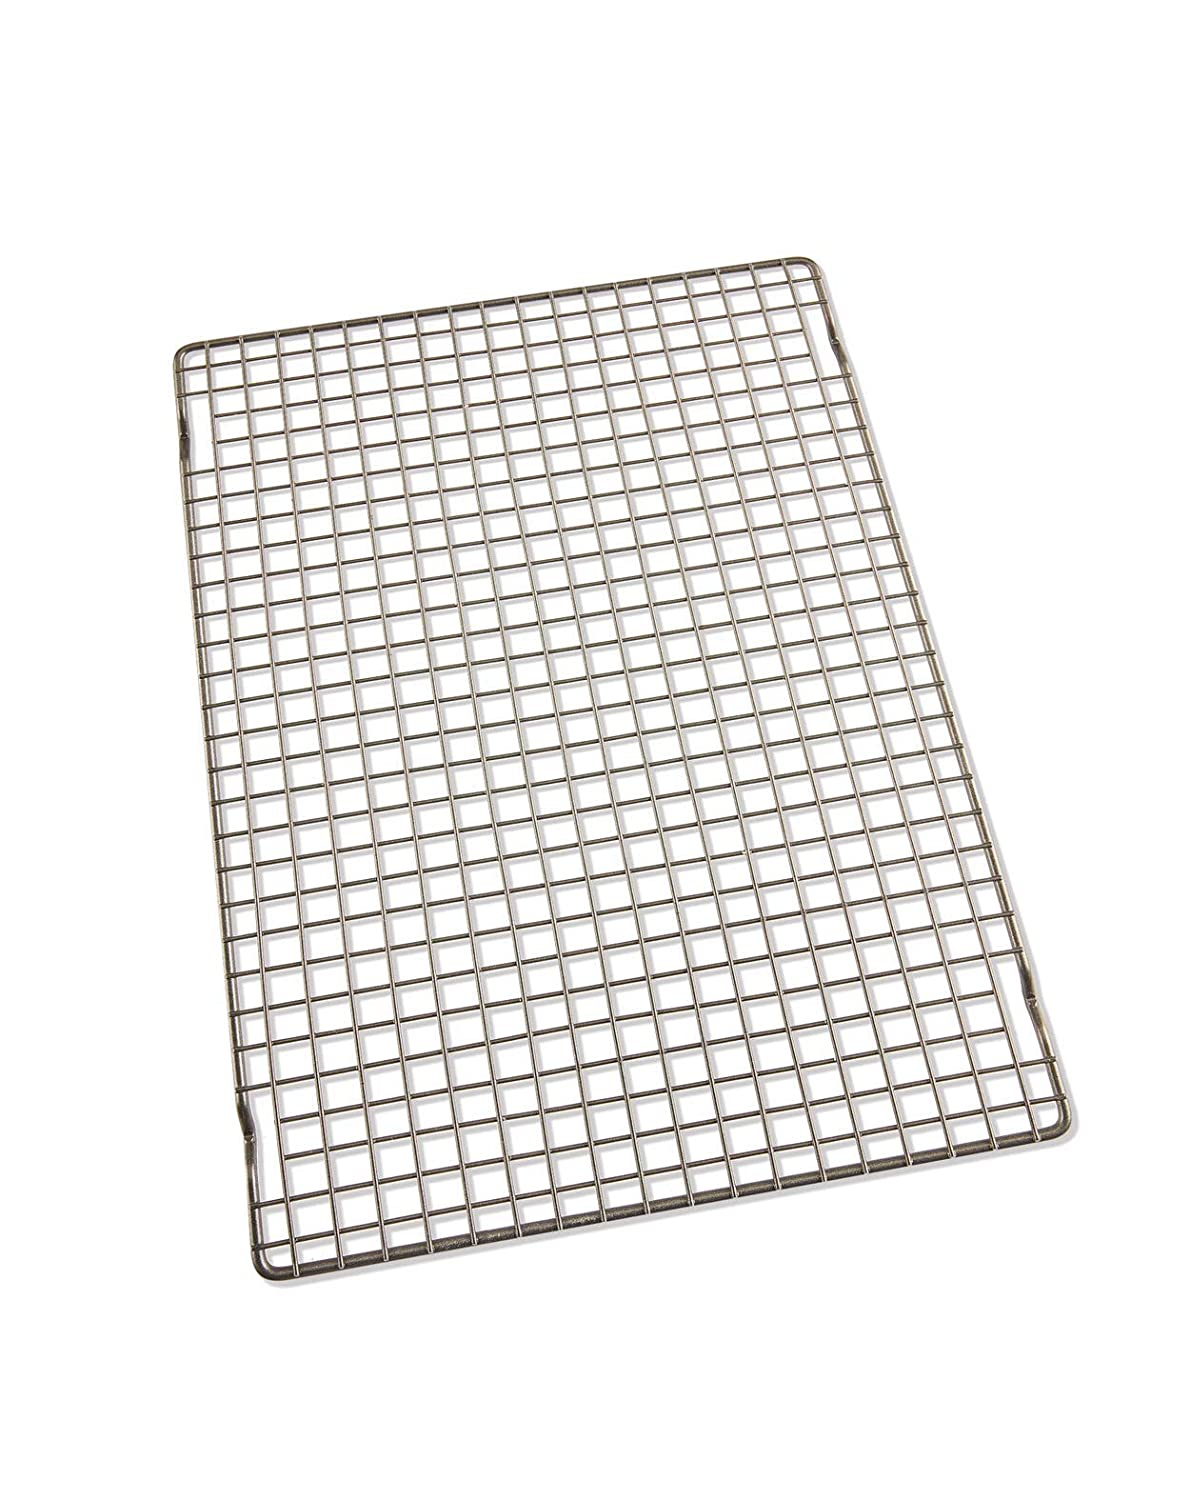 All-Clad J2549064 Pro-Release cooling rack, 12 In x 17 In, Grey